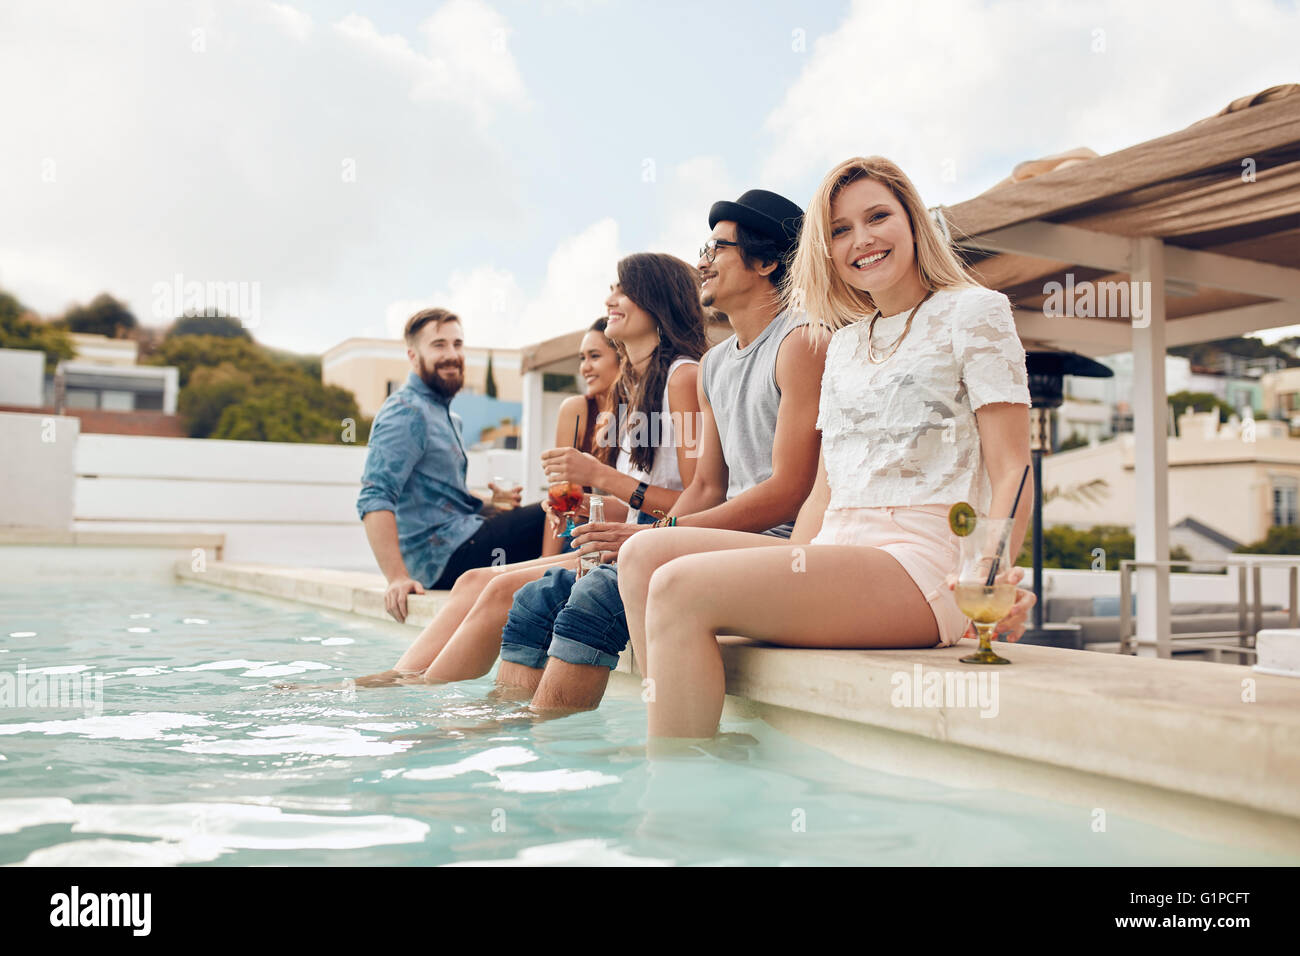 Portrait of happy young woman sitting by the pool with her friends partying. Young people relaxing by the swimming - Stock Image